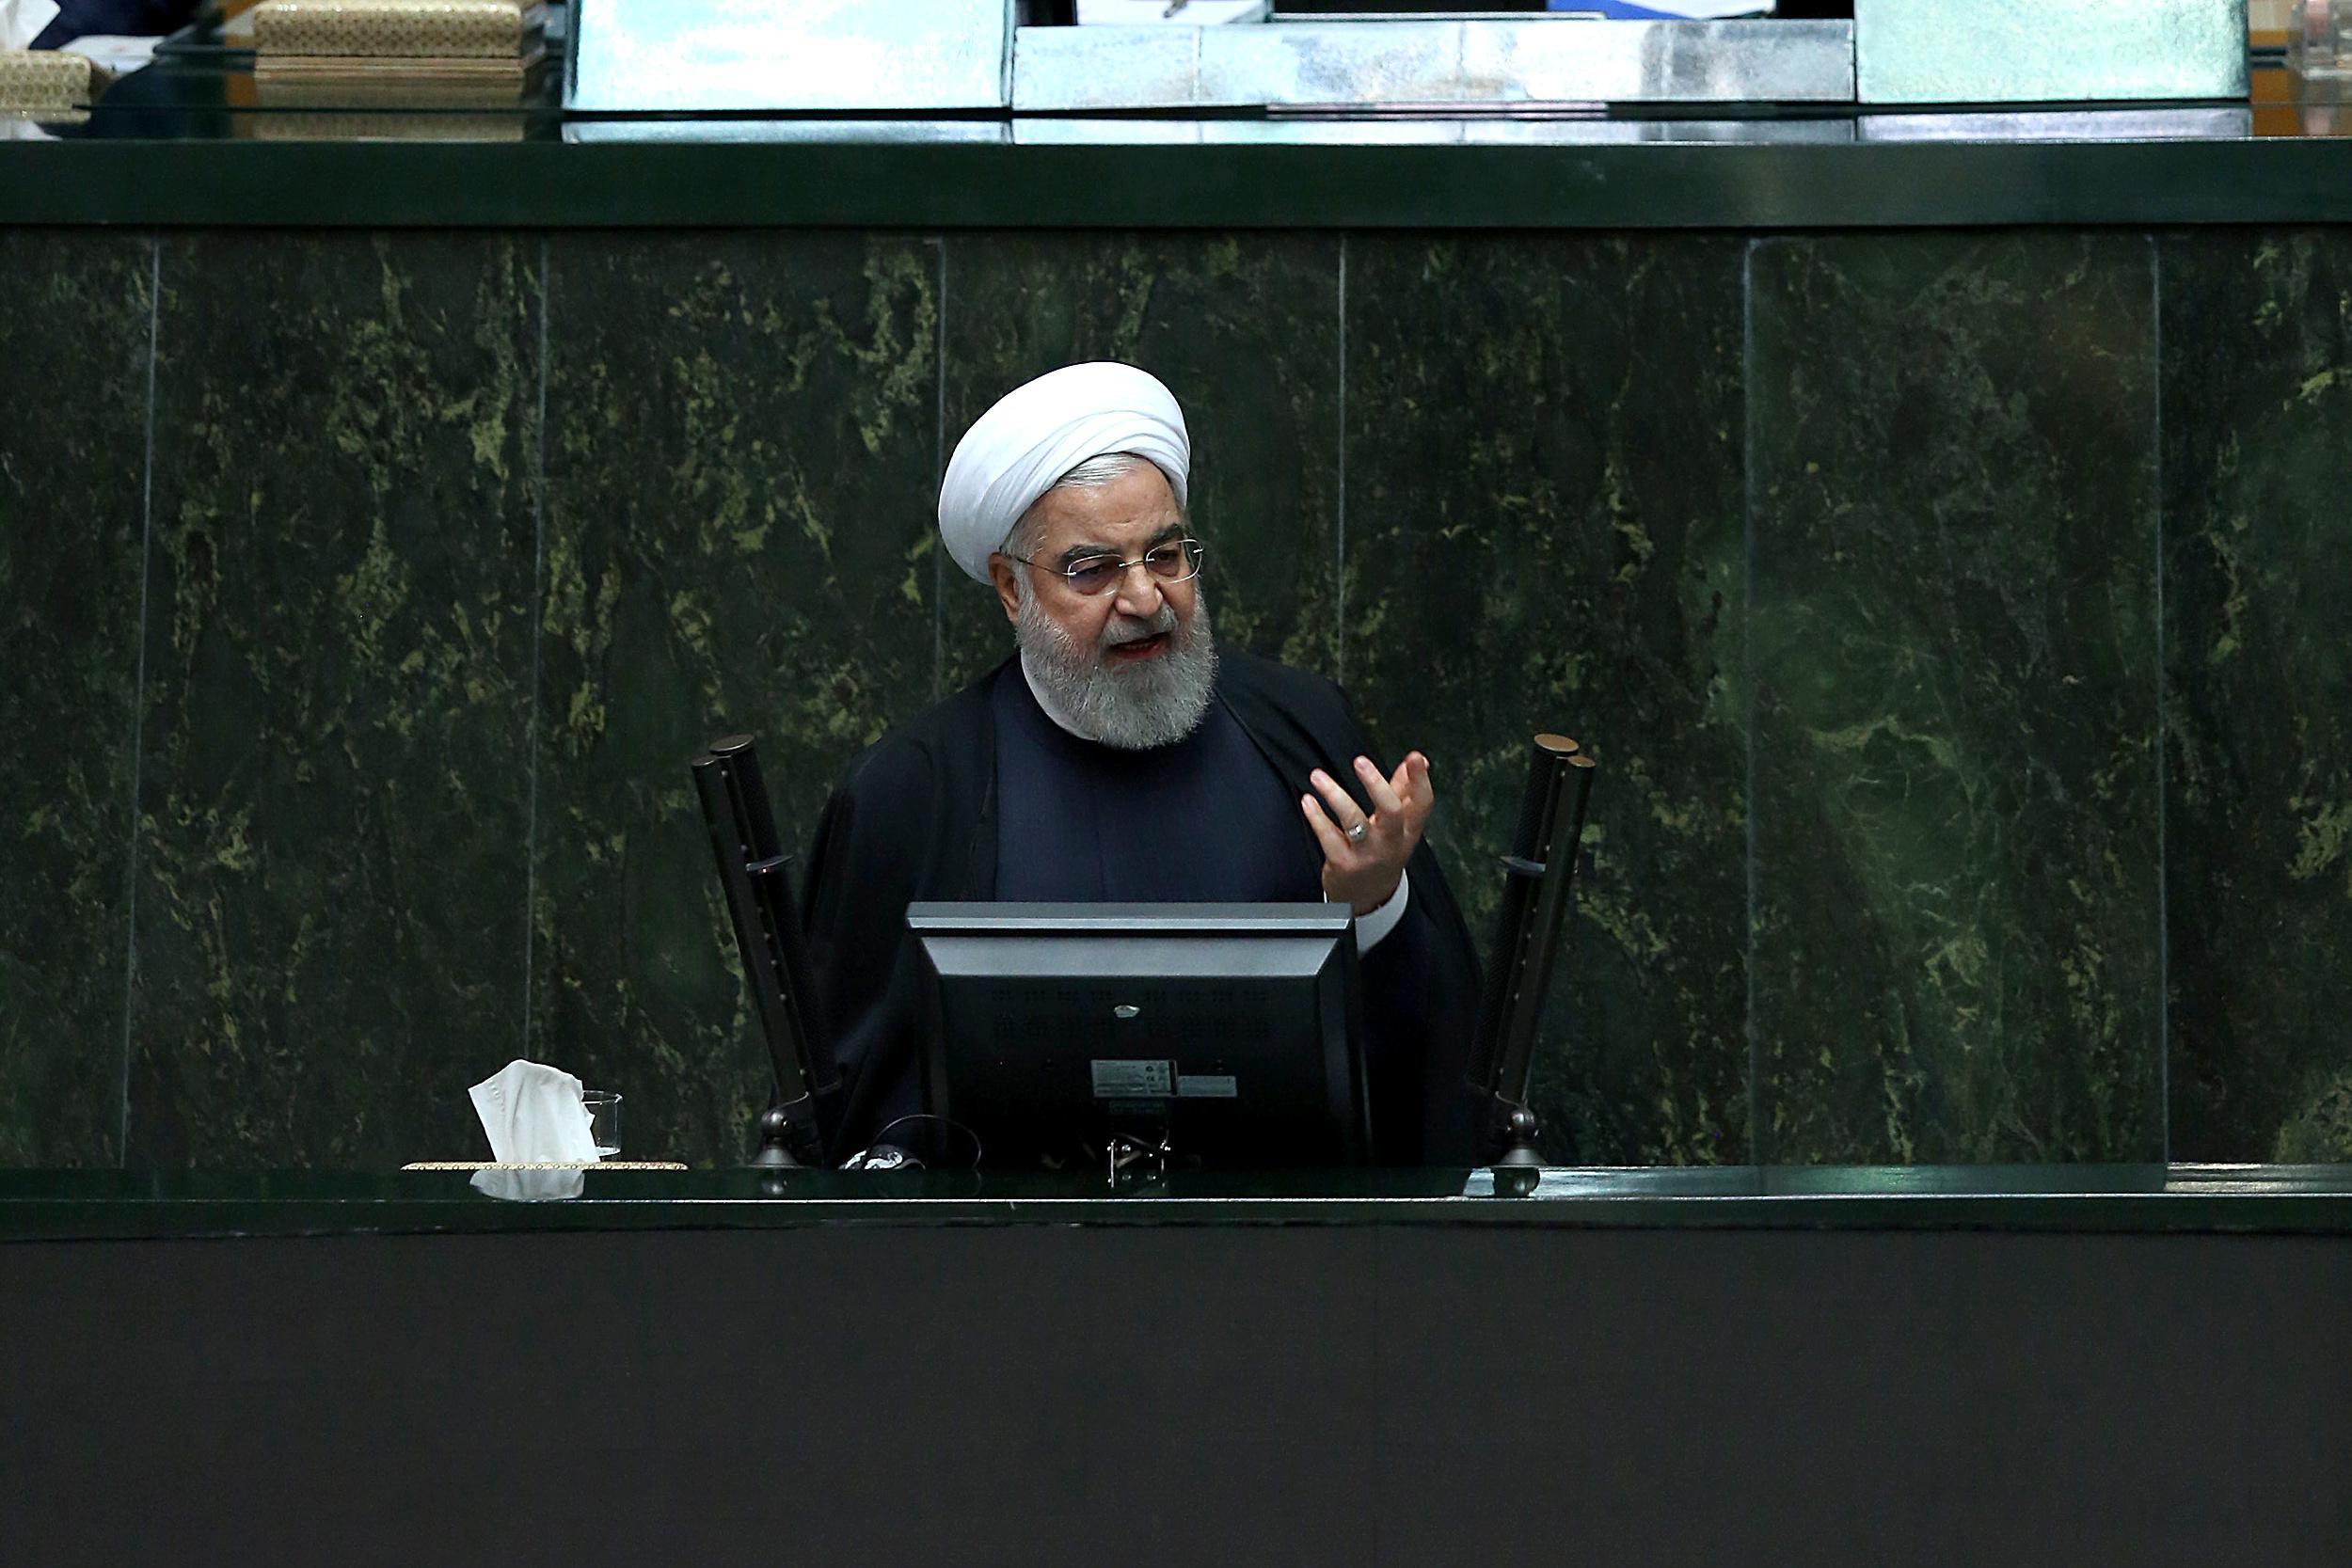 Iran outlines budget to resist U.S. sanctions as oil exports plunge